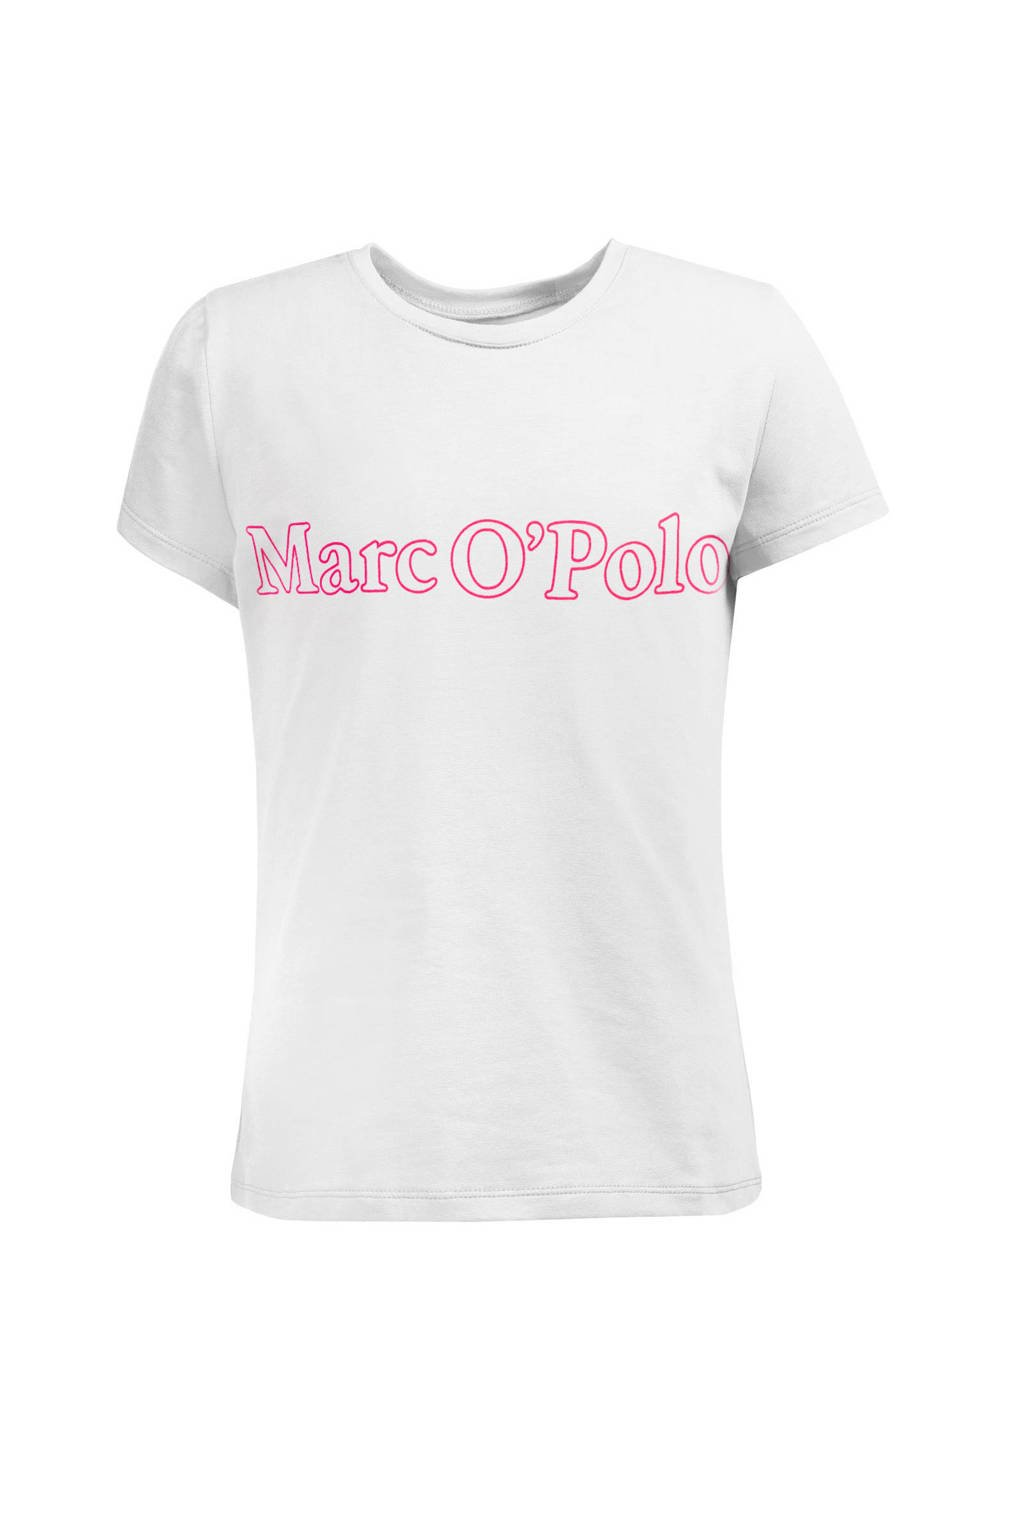 Marc O'Polo T-shirt met logo wit, Wit